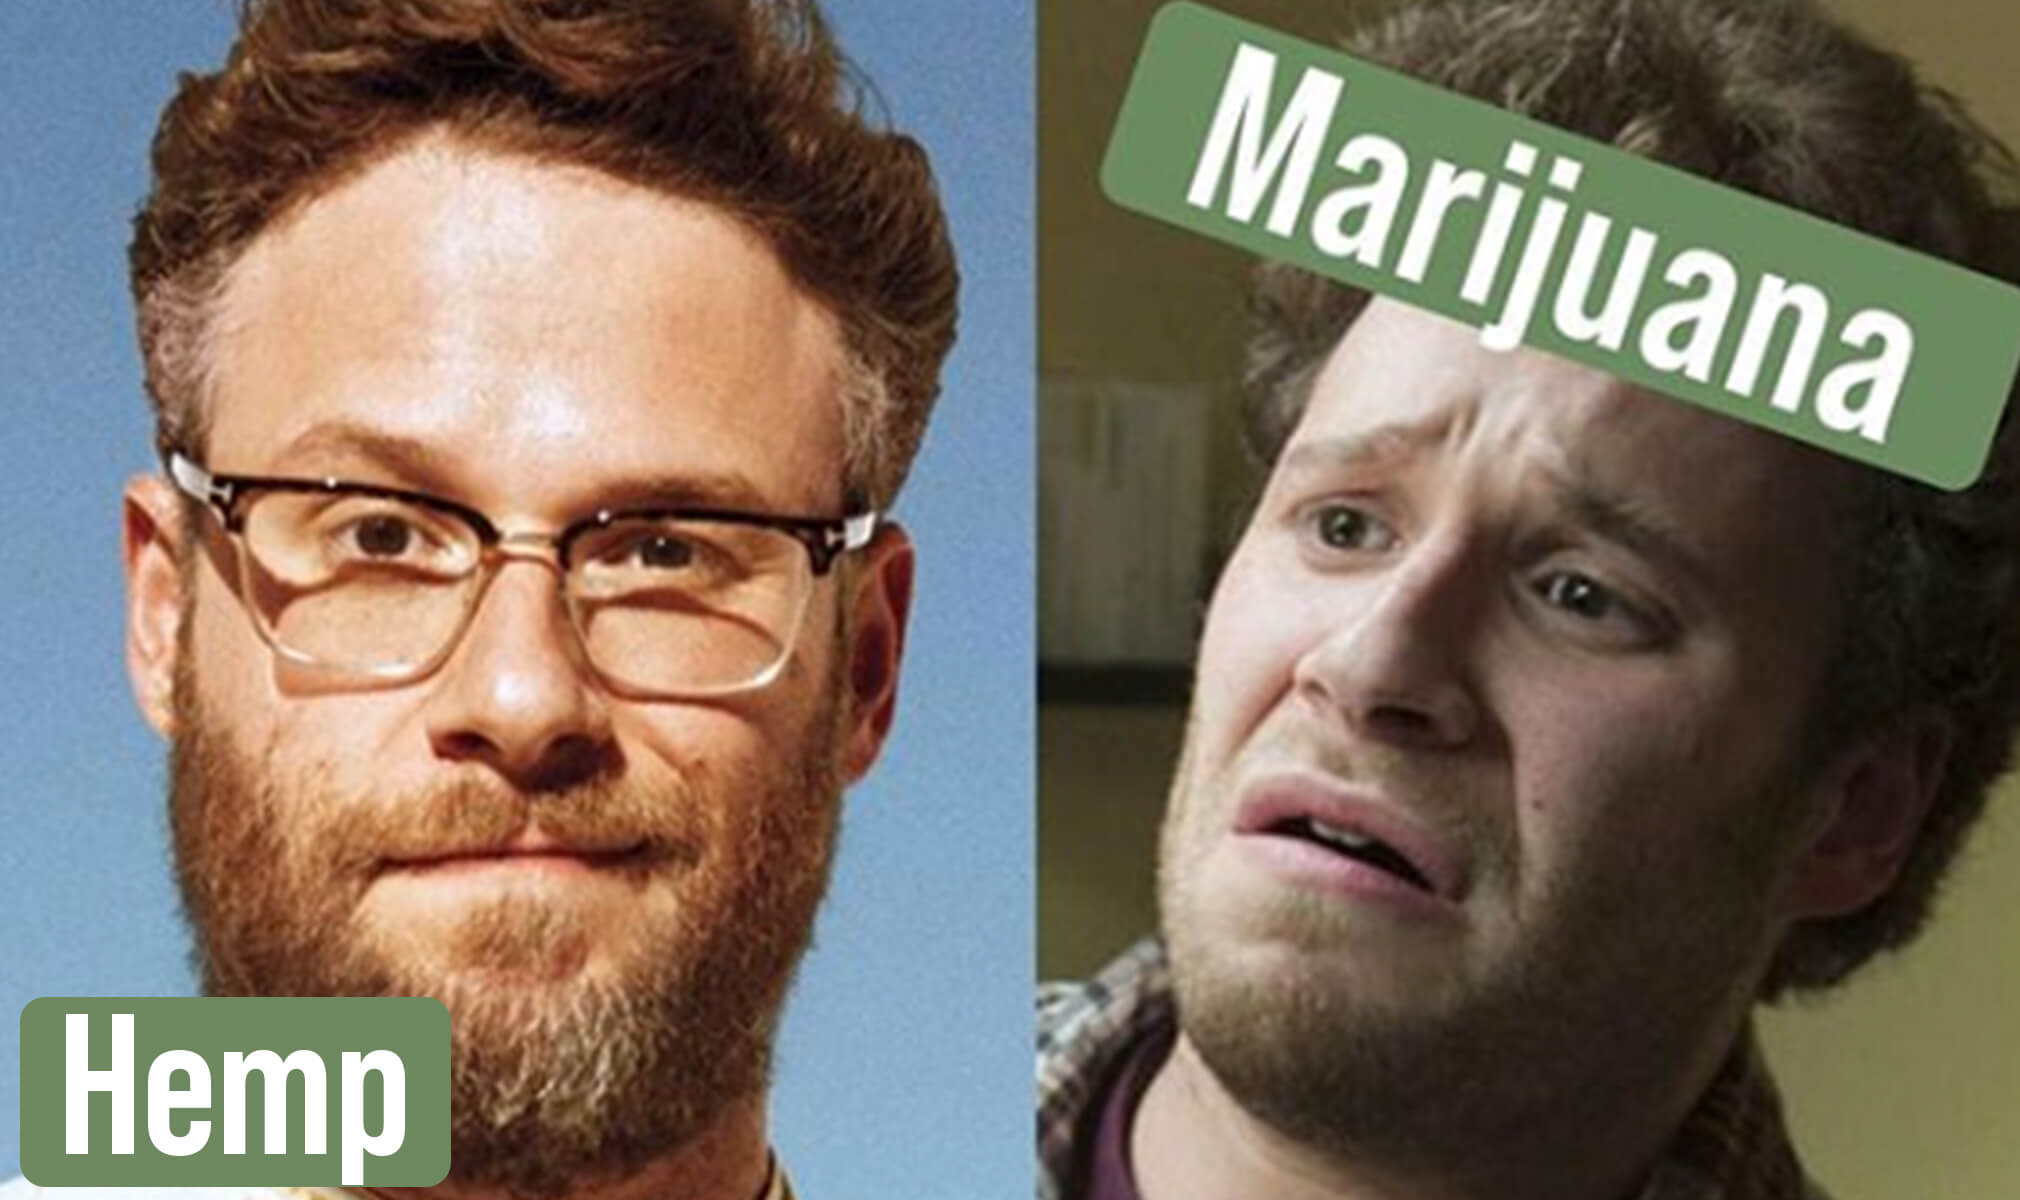 What's The Difference Between Hemp And Marijuana